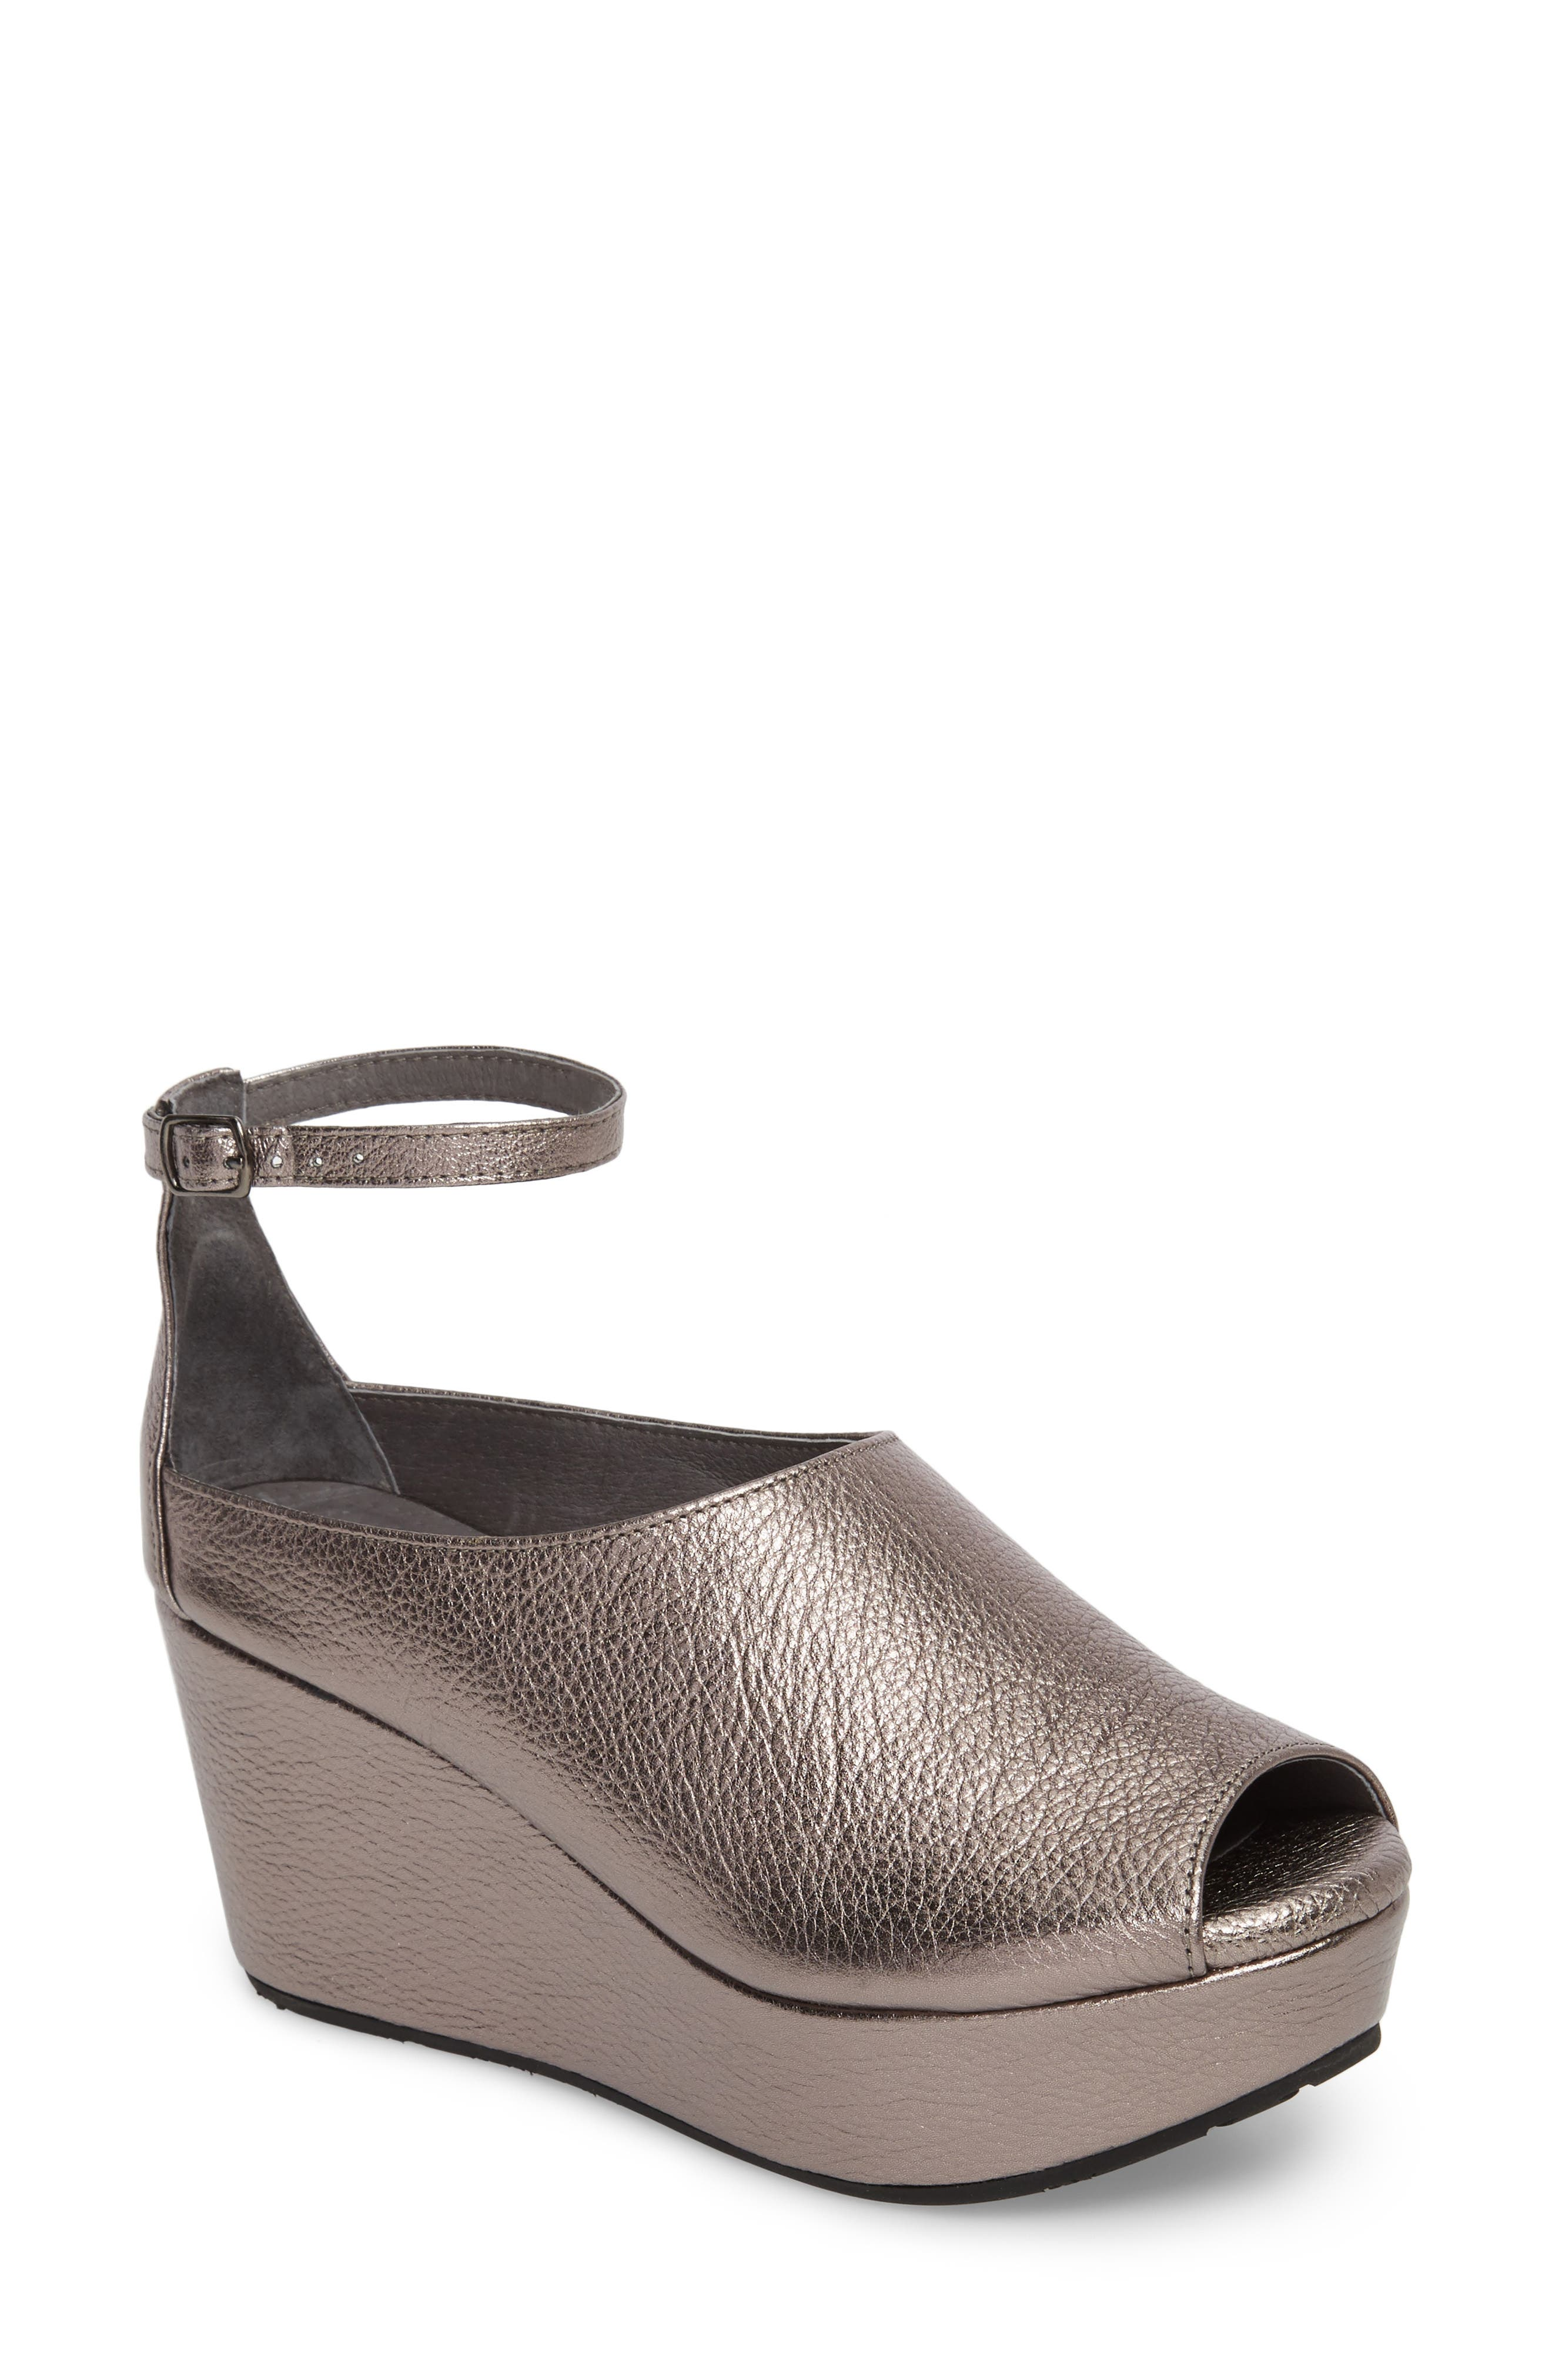 Walter Ankle Strap Wedge Sandal,                         Main,                         color, GUNMETAL LEATHER